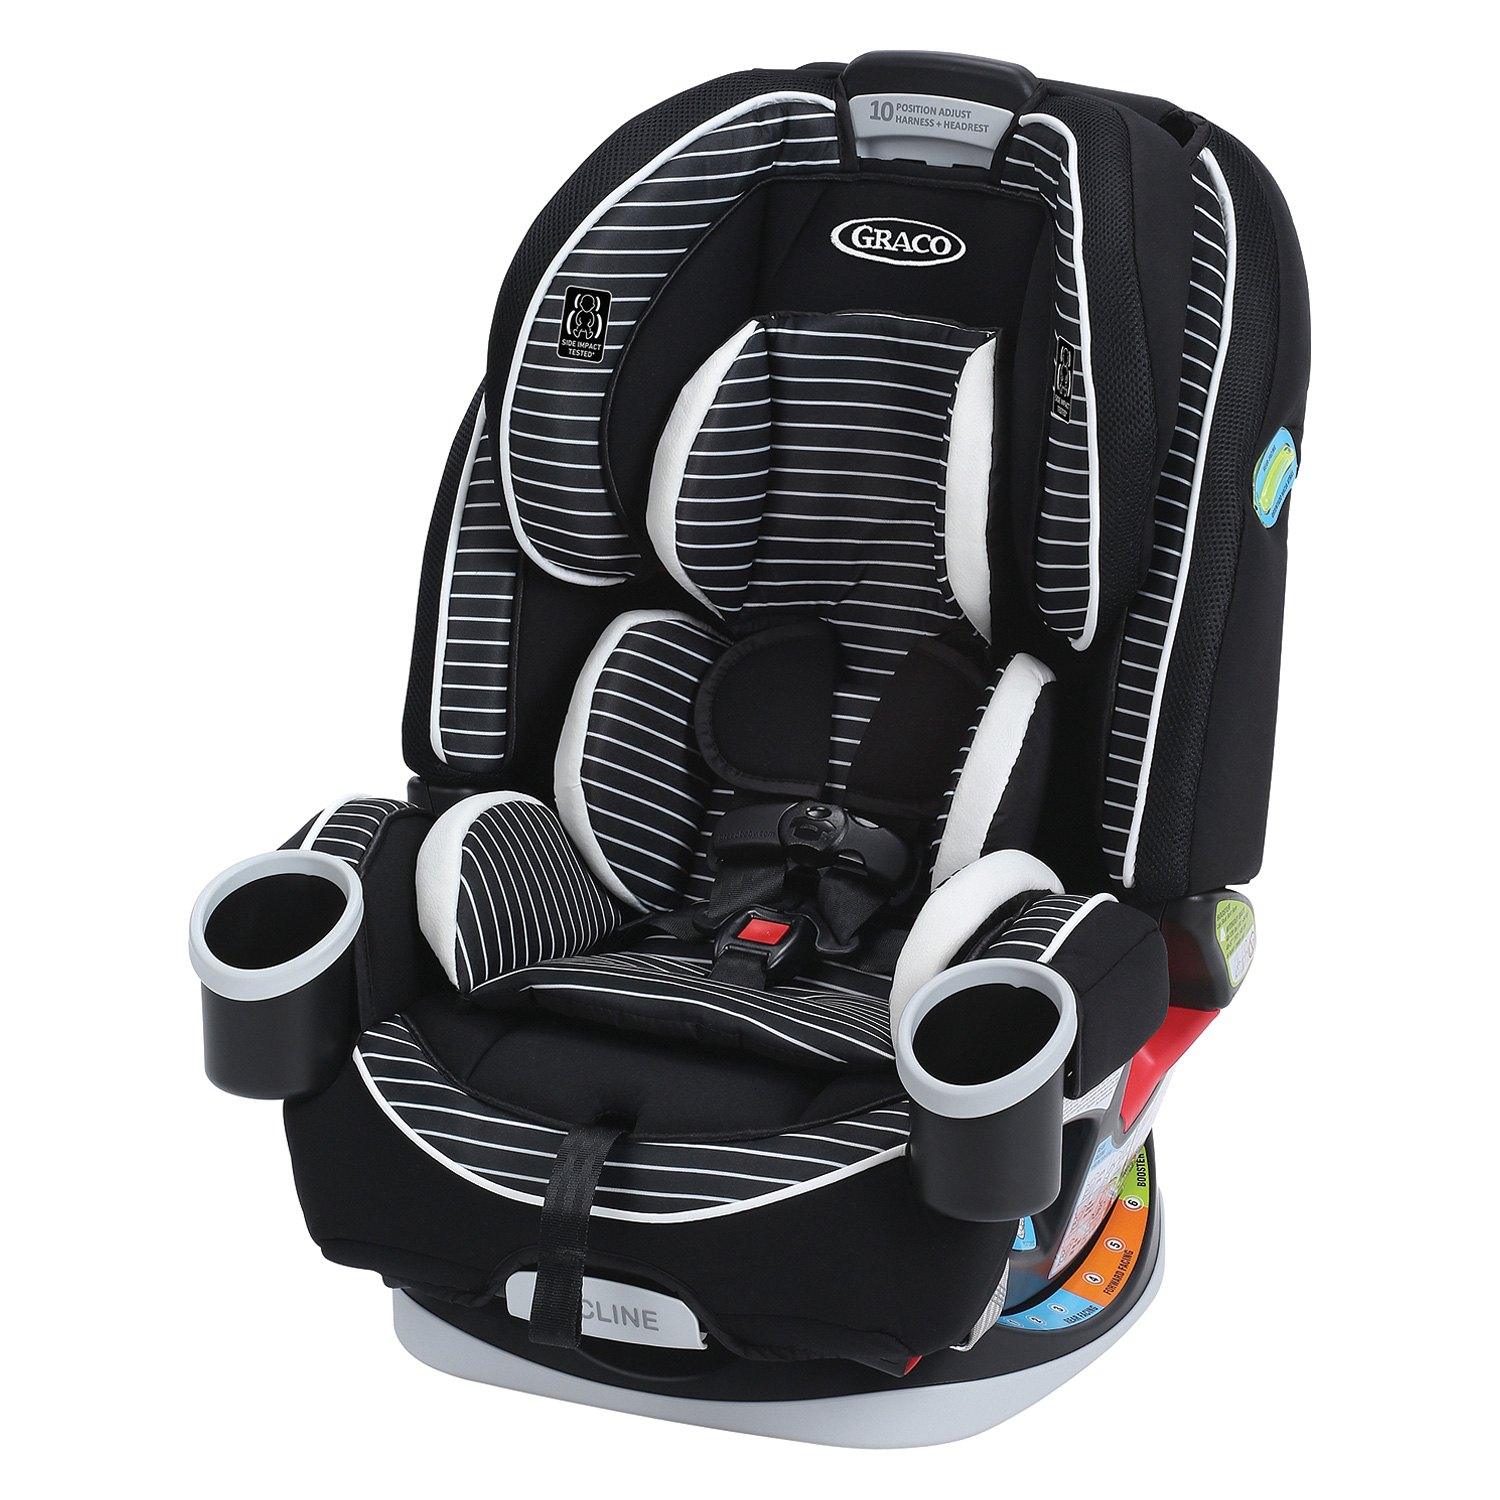 graco baby 1943812 4ever studio style all in 1 car seat. Black Bedroom Furniture Sets. Home Design Ideas